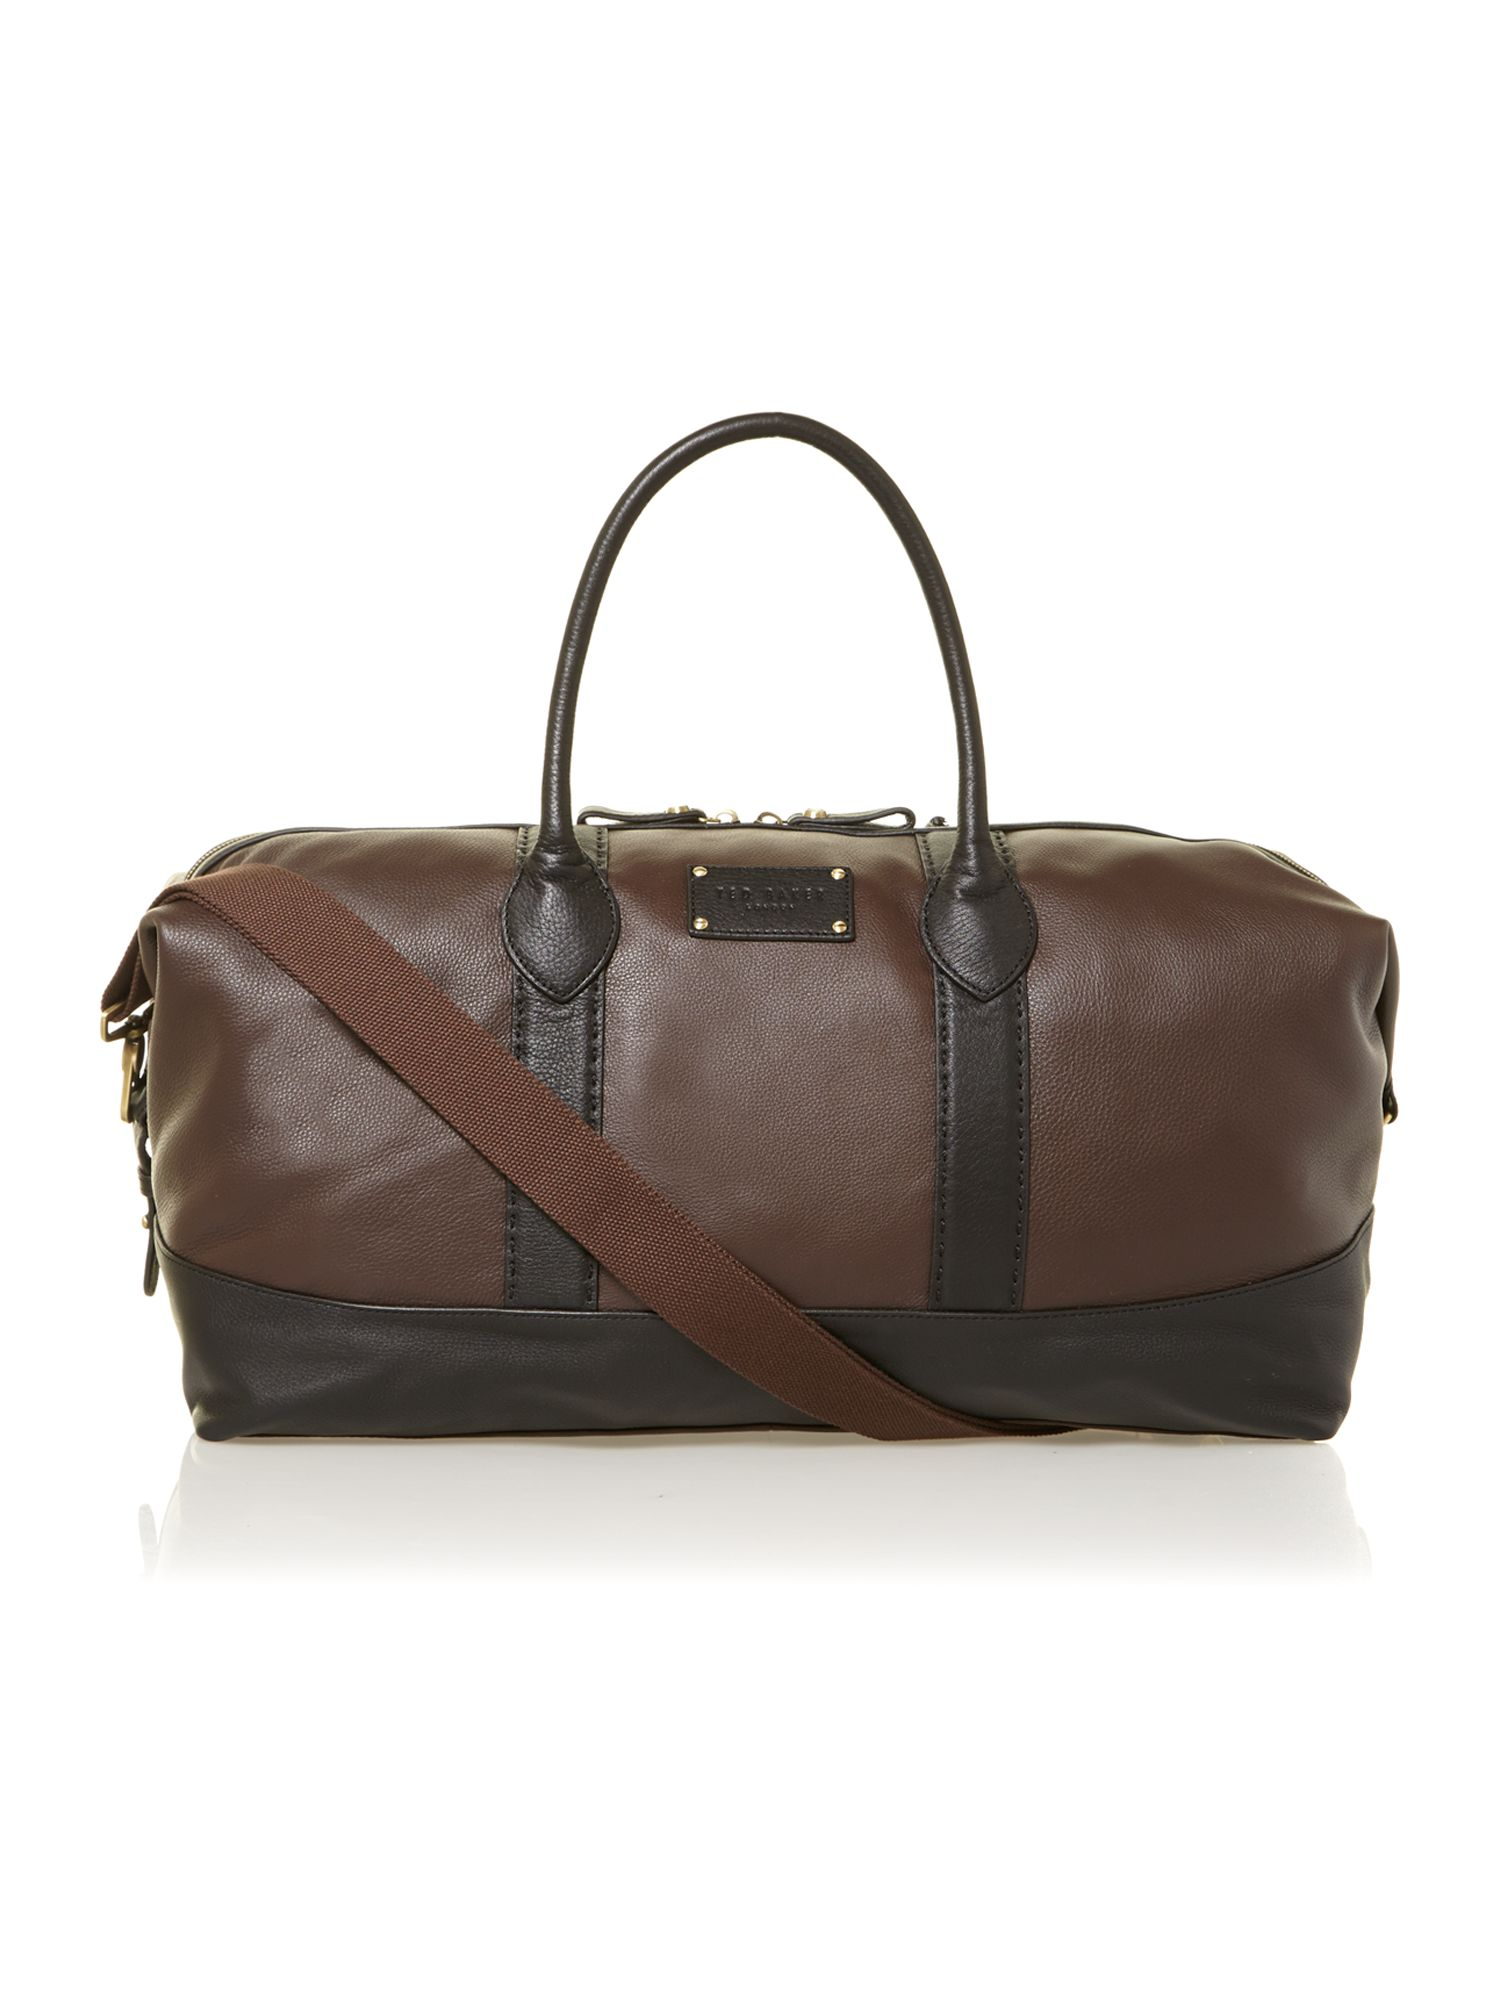 Stab stitch strap holdall bag